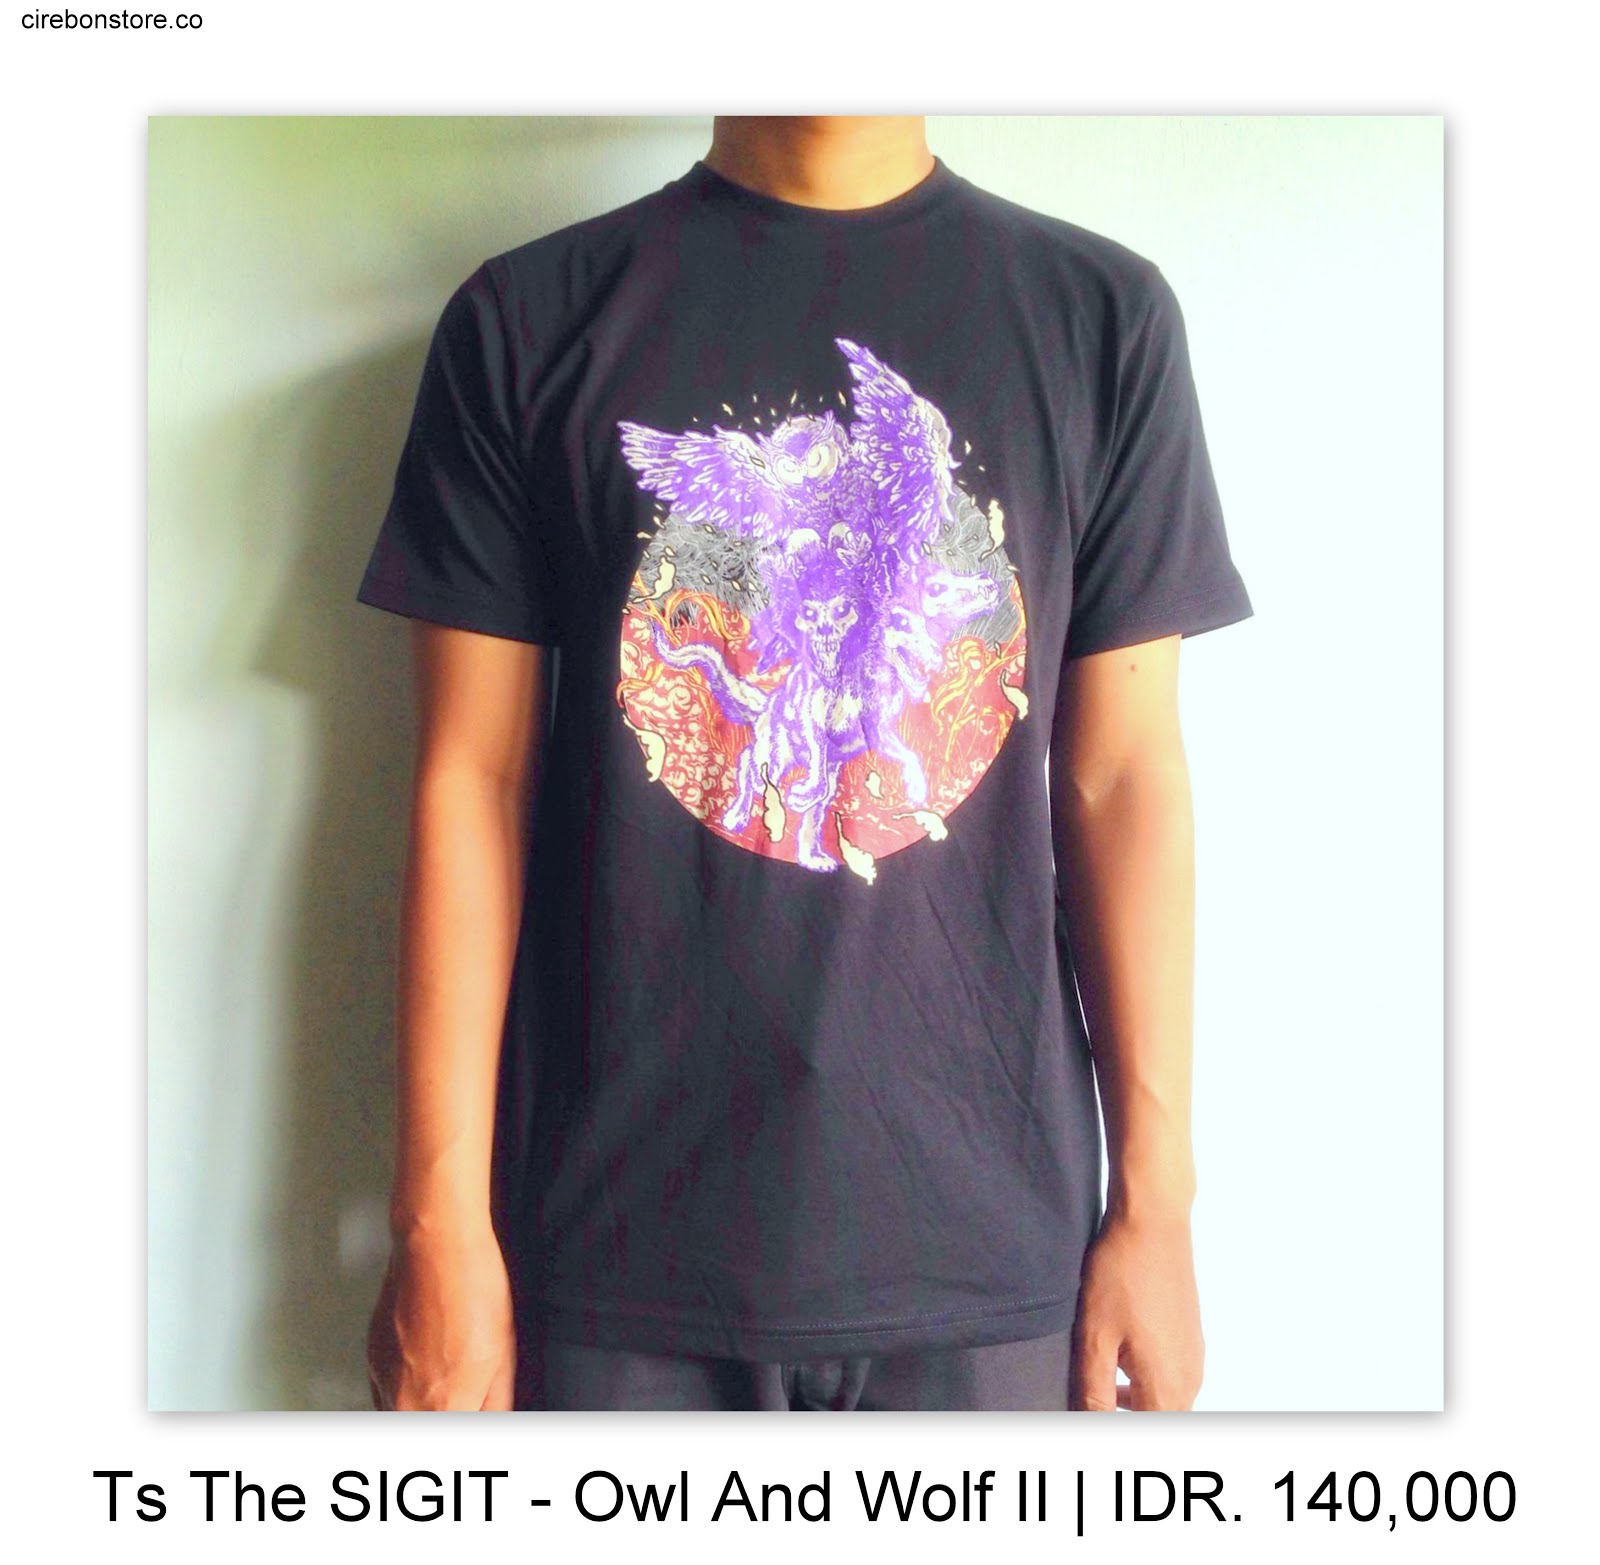 TS THE SIGIT - OWL AND WOLF II